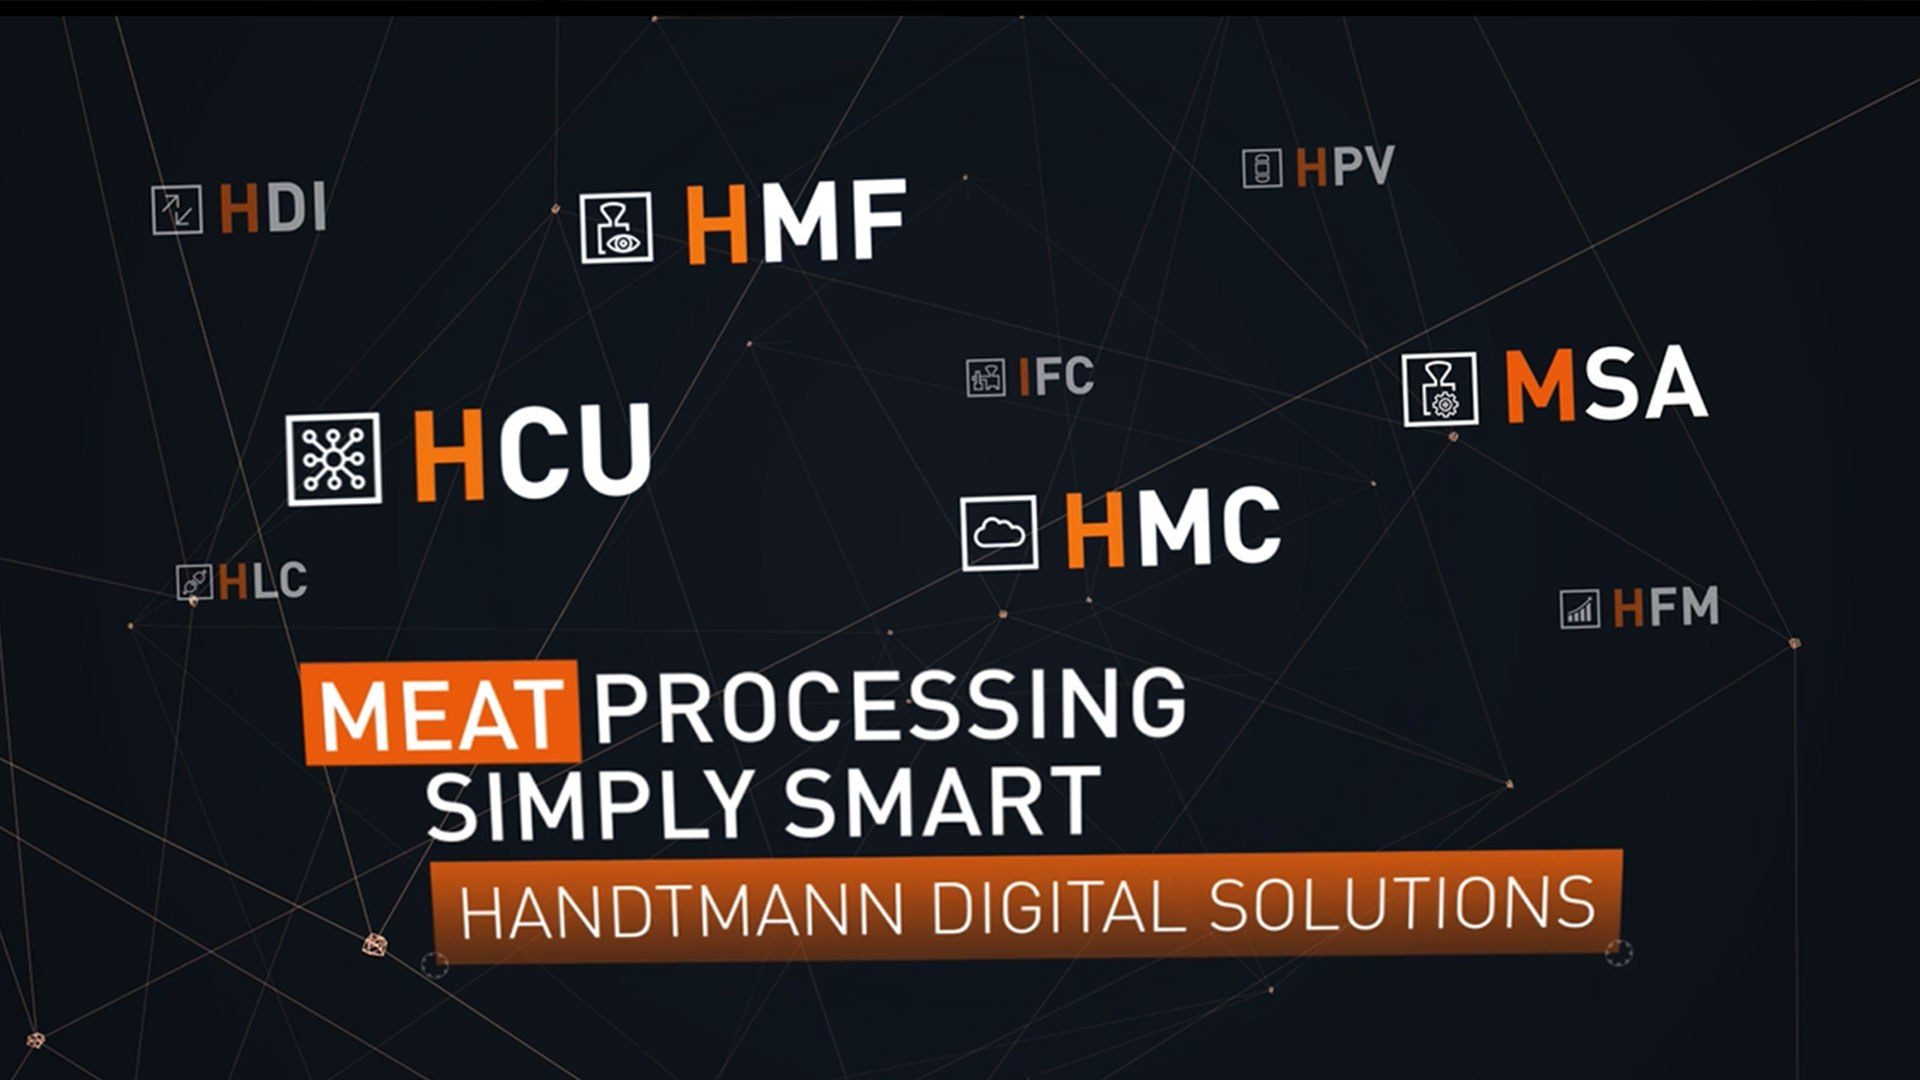 Handtmann Digital Solutions